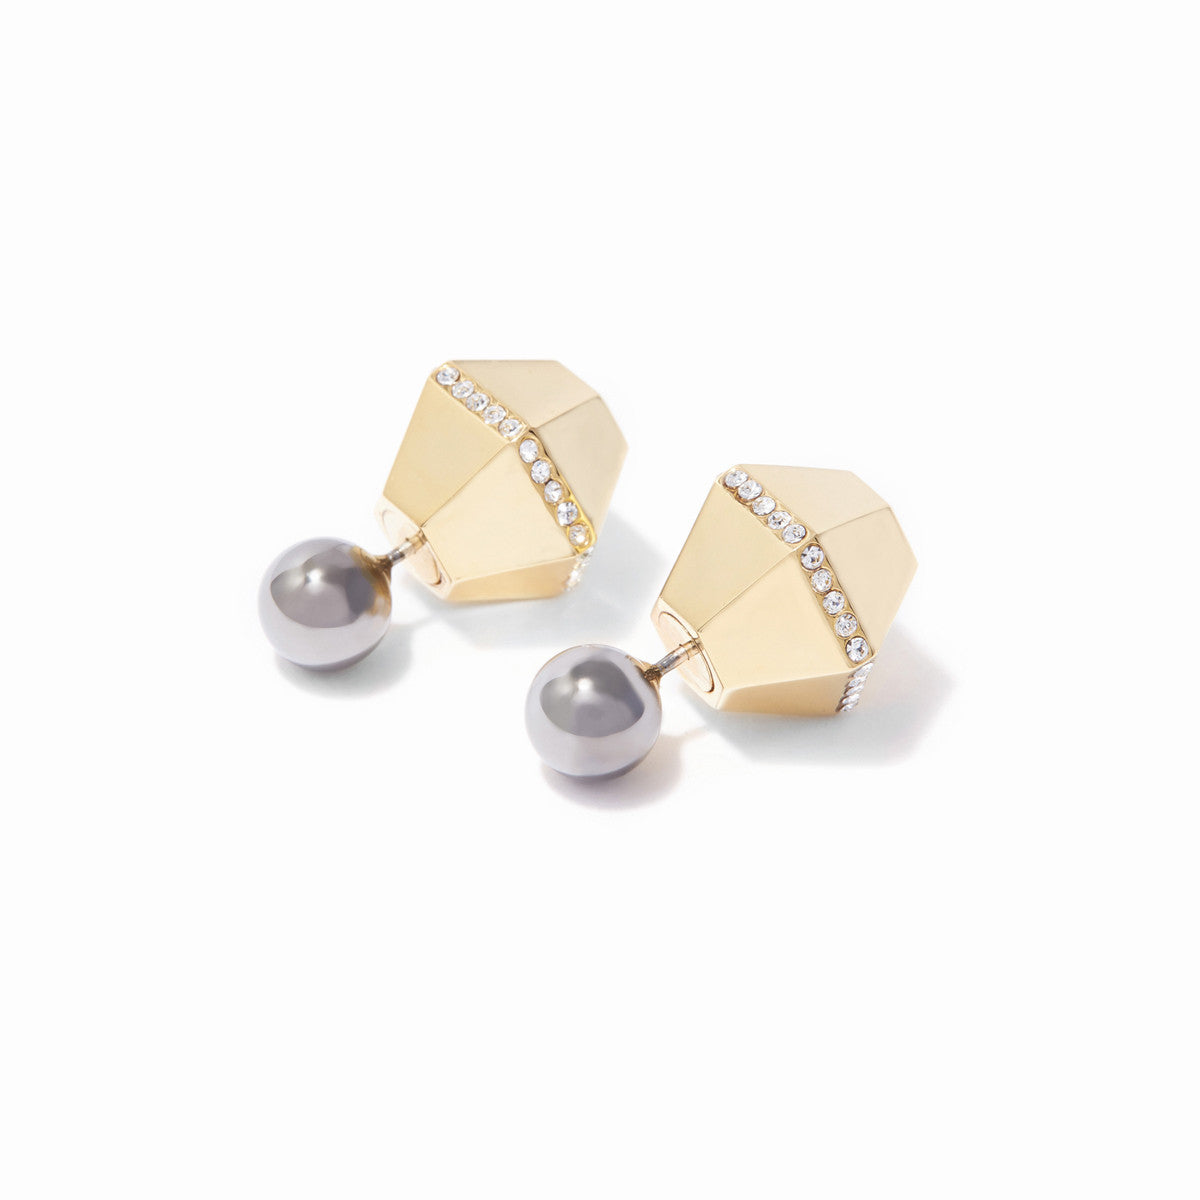 Sixtine Reversible Earrings - 2 Tone Gold and Hematite